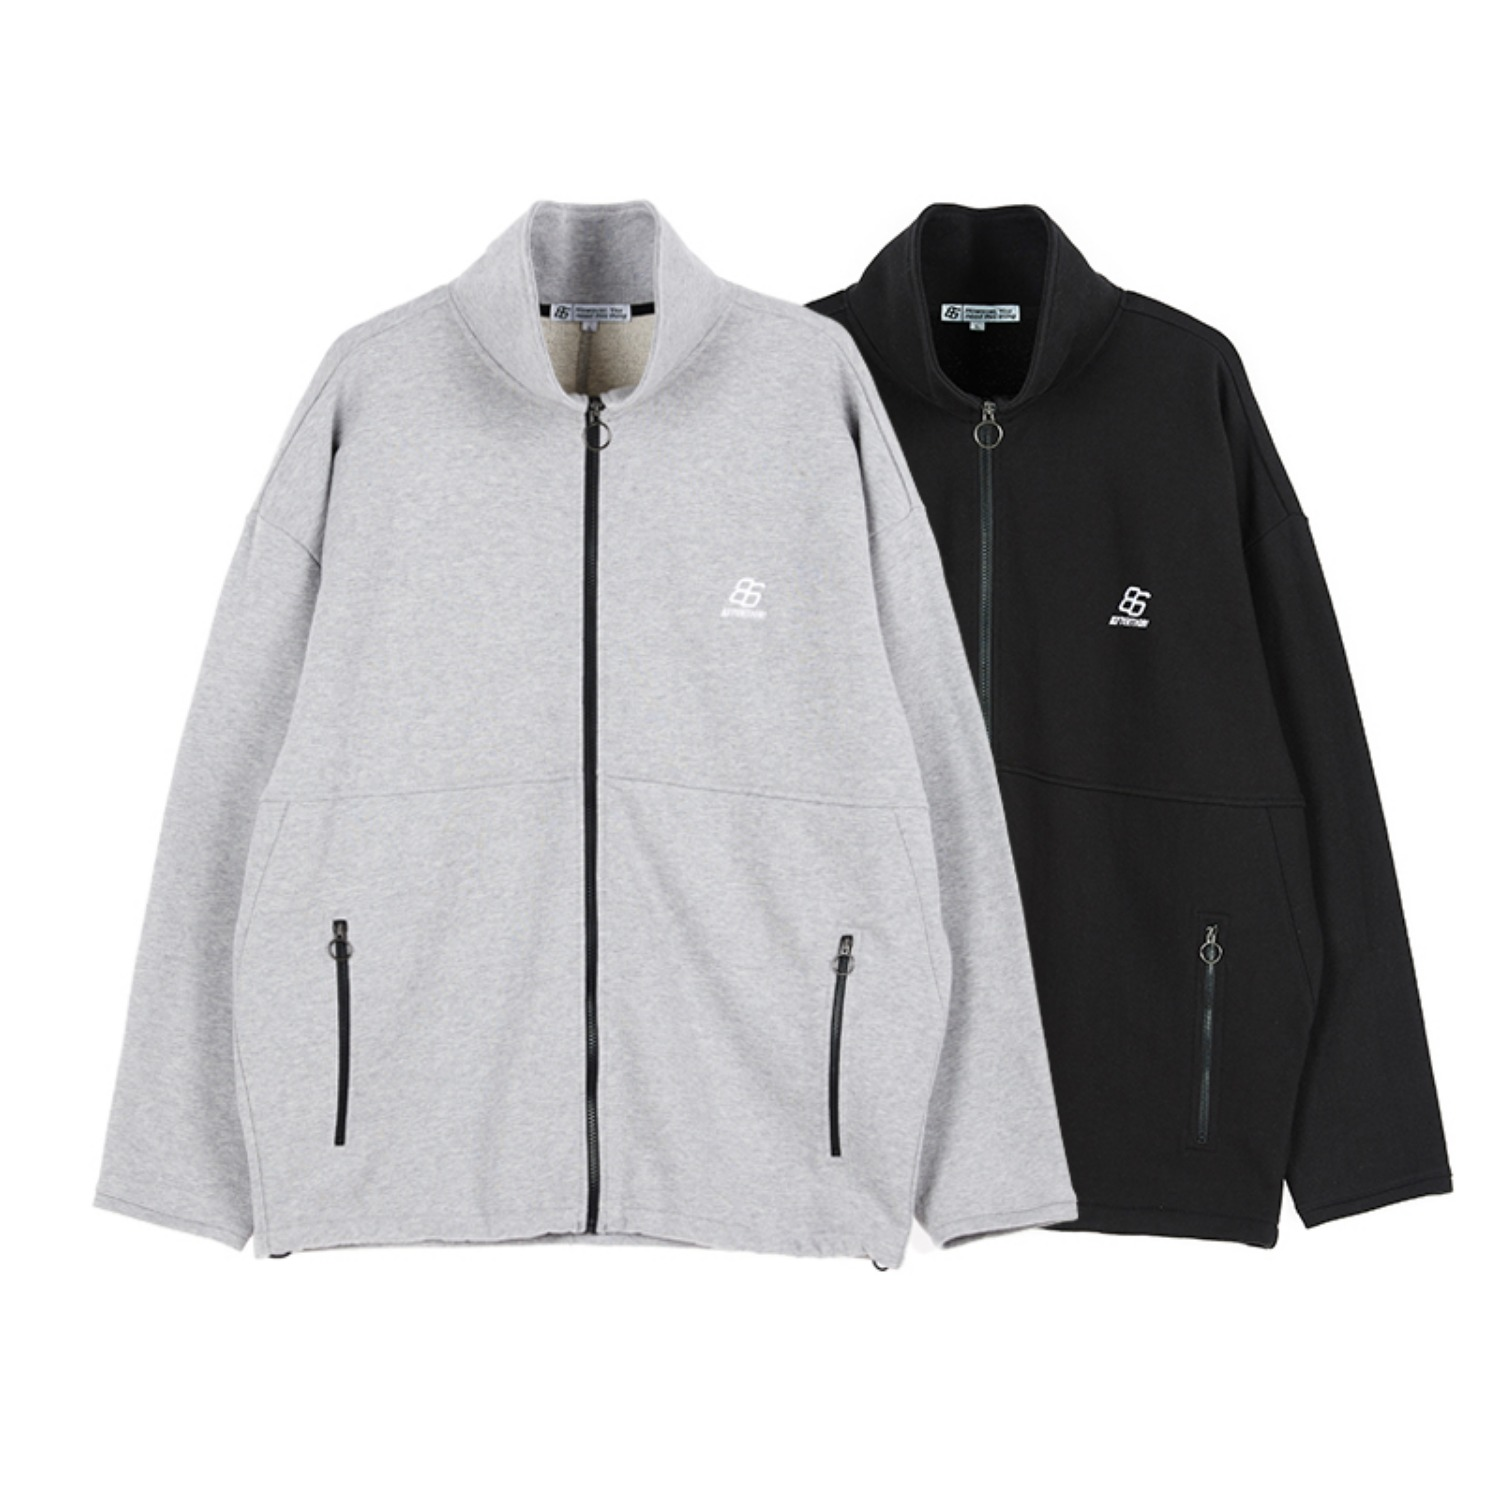 OVERFIT RING ZIP-UP